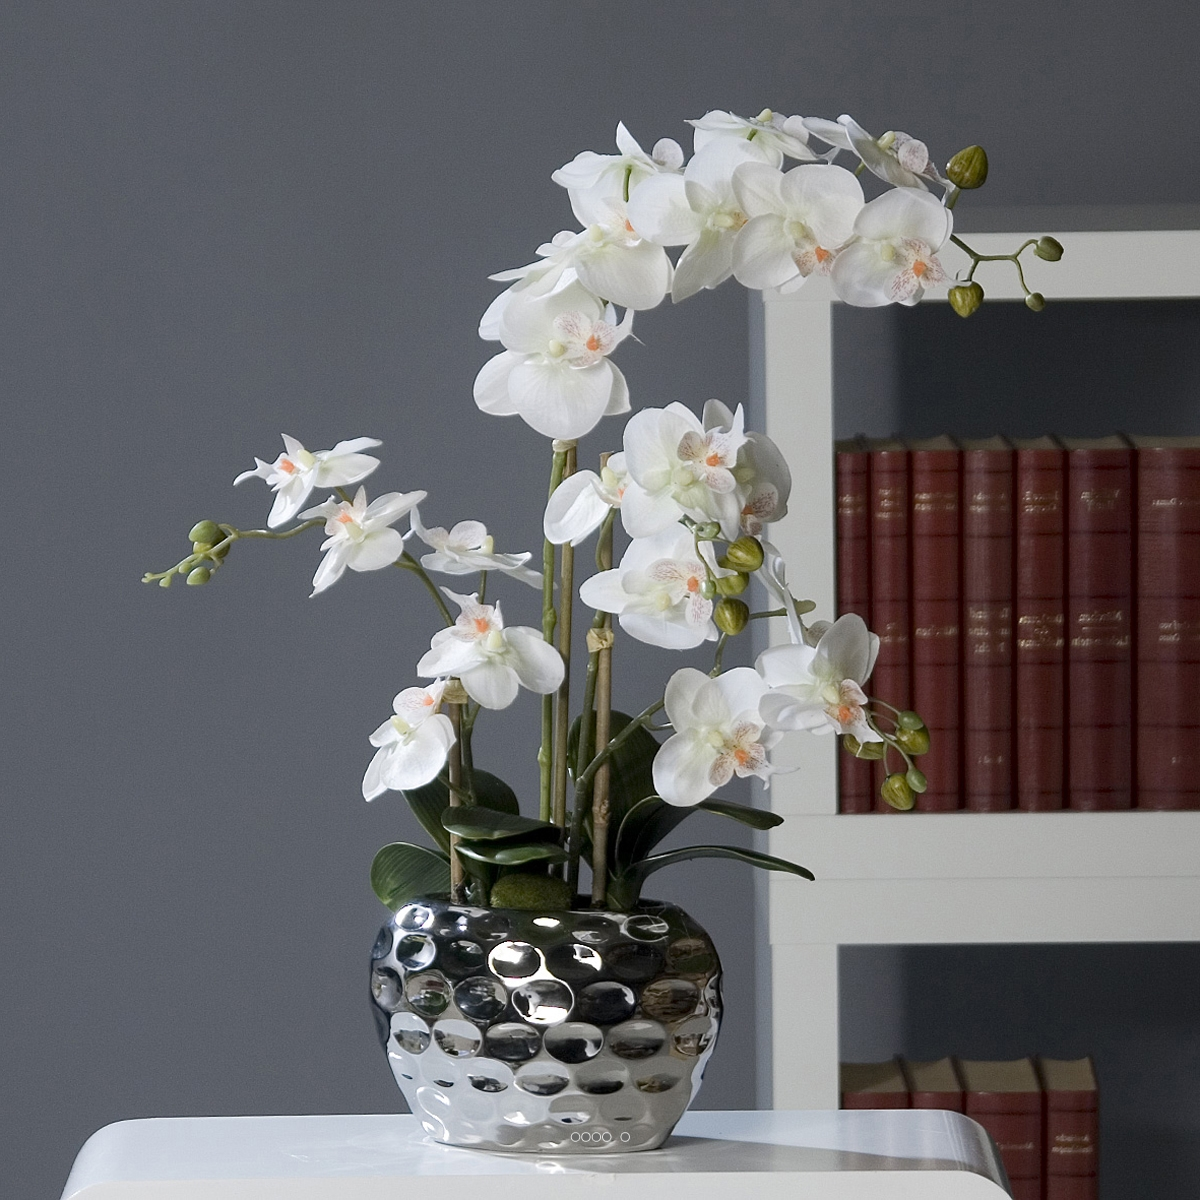 orchid e artificielle 2 hampes pot c ramique argent h 54 cm du site. Black Bedroom Furniture Sets. Home Design Ideas